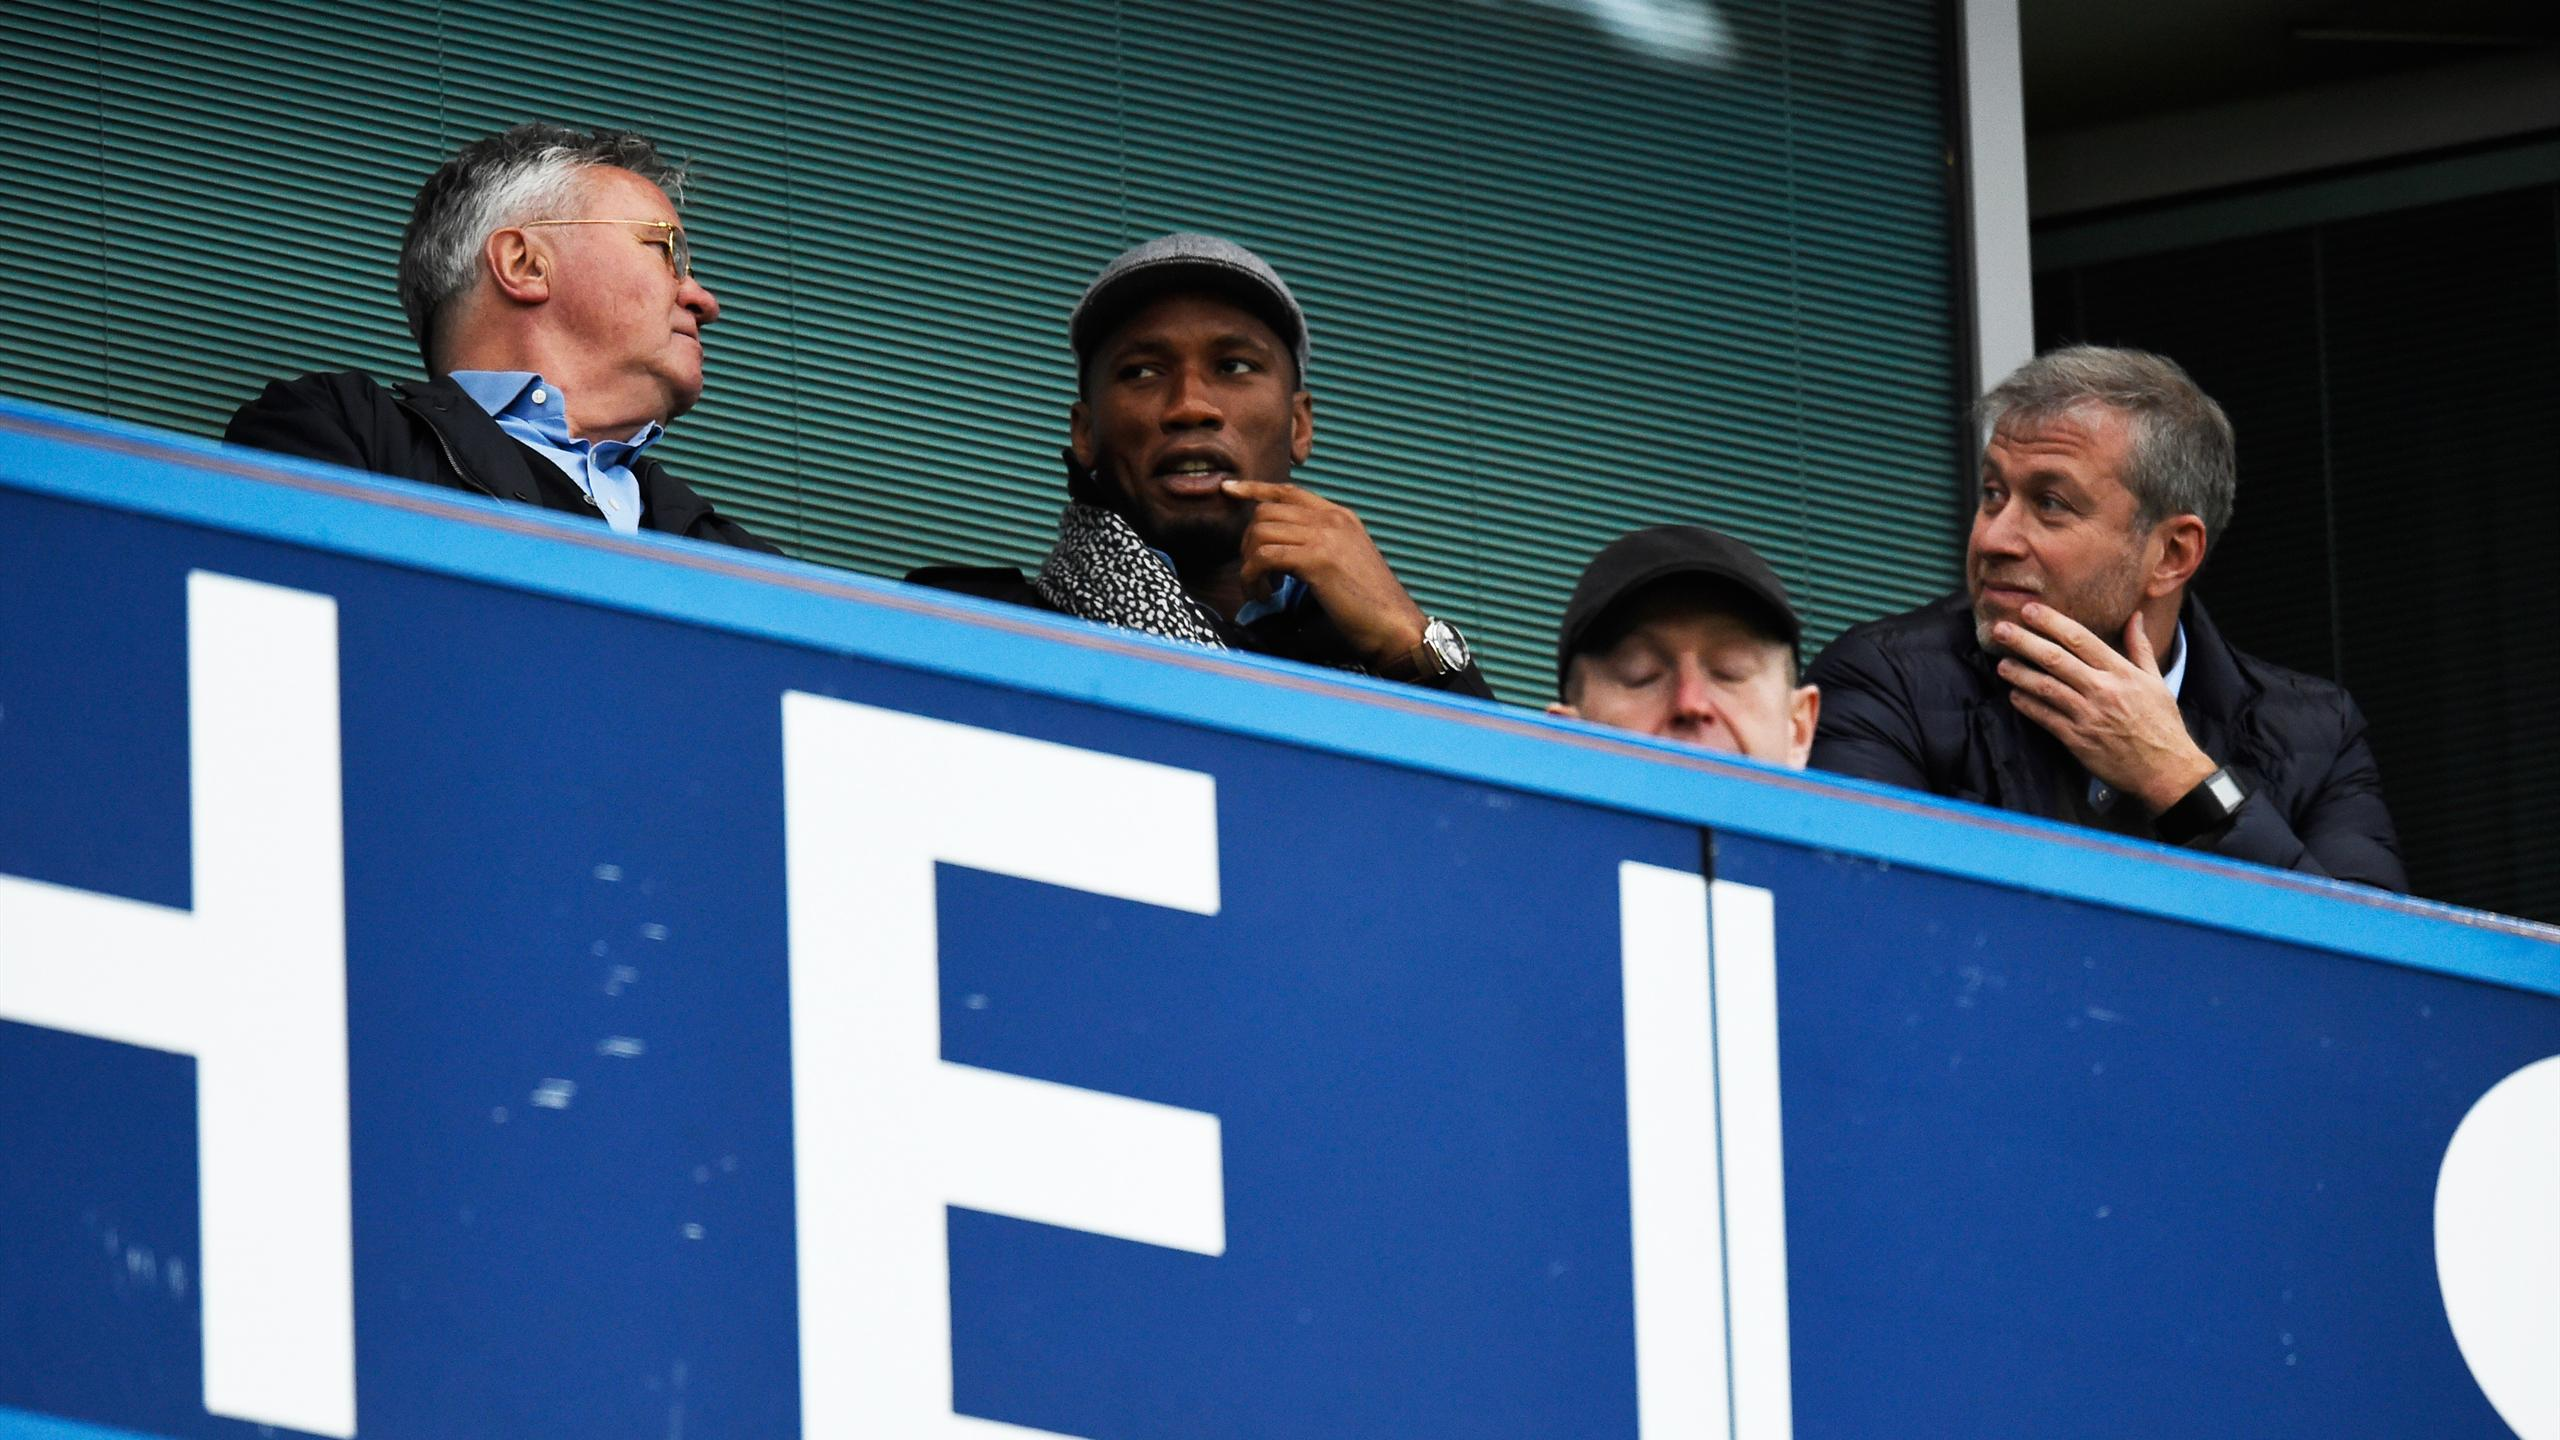 New Chelsea manager Guus Hiddink sat in the stands with Didier Drogba and owner Roman Abramovich before kick off